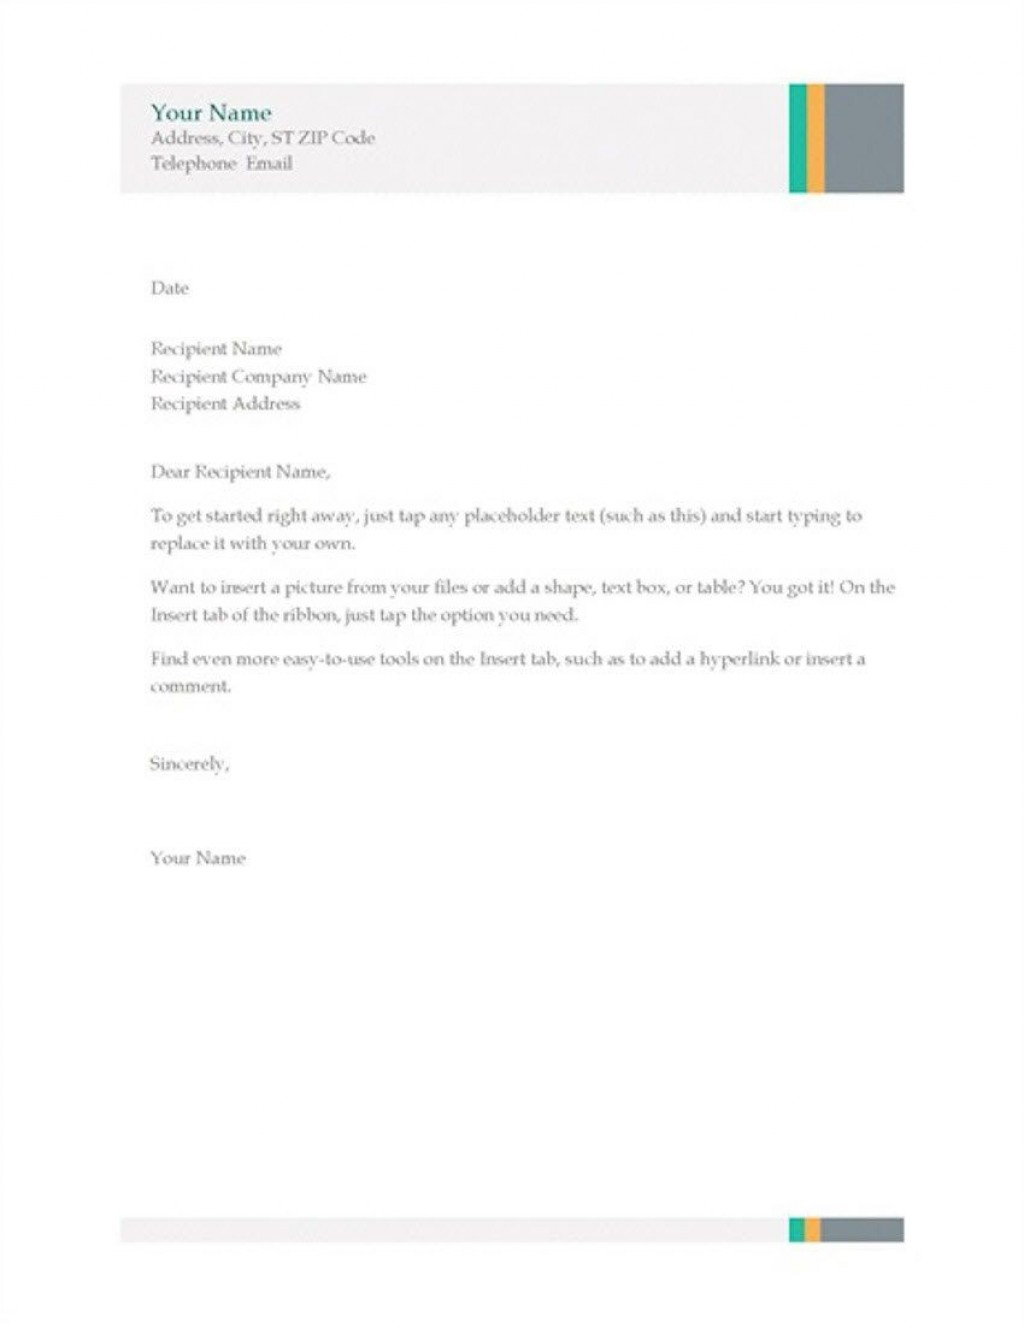 004 Astounding Company Letterhead Format In Word Free Download High Resolution  Sample Template 2020Large